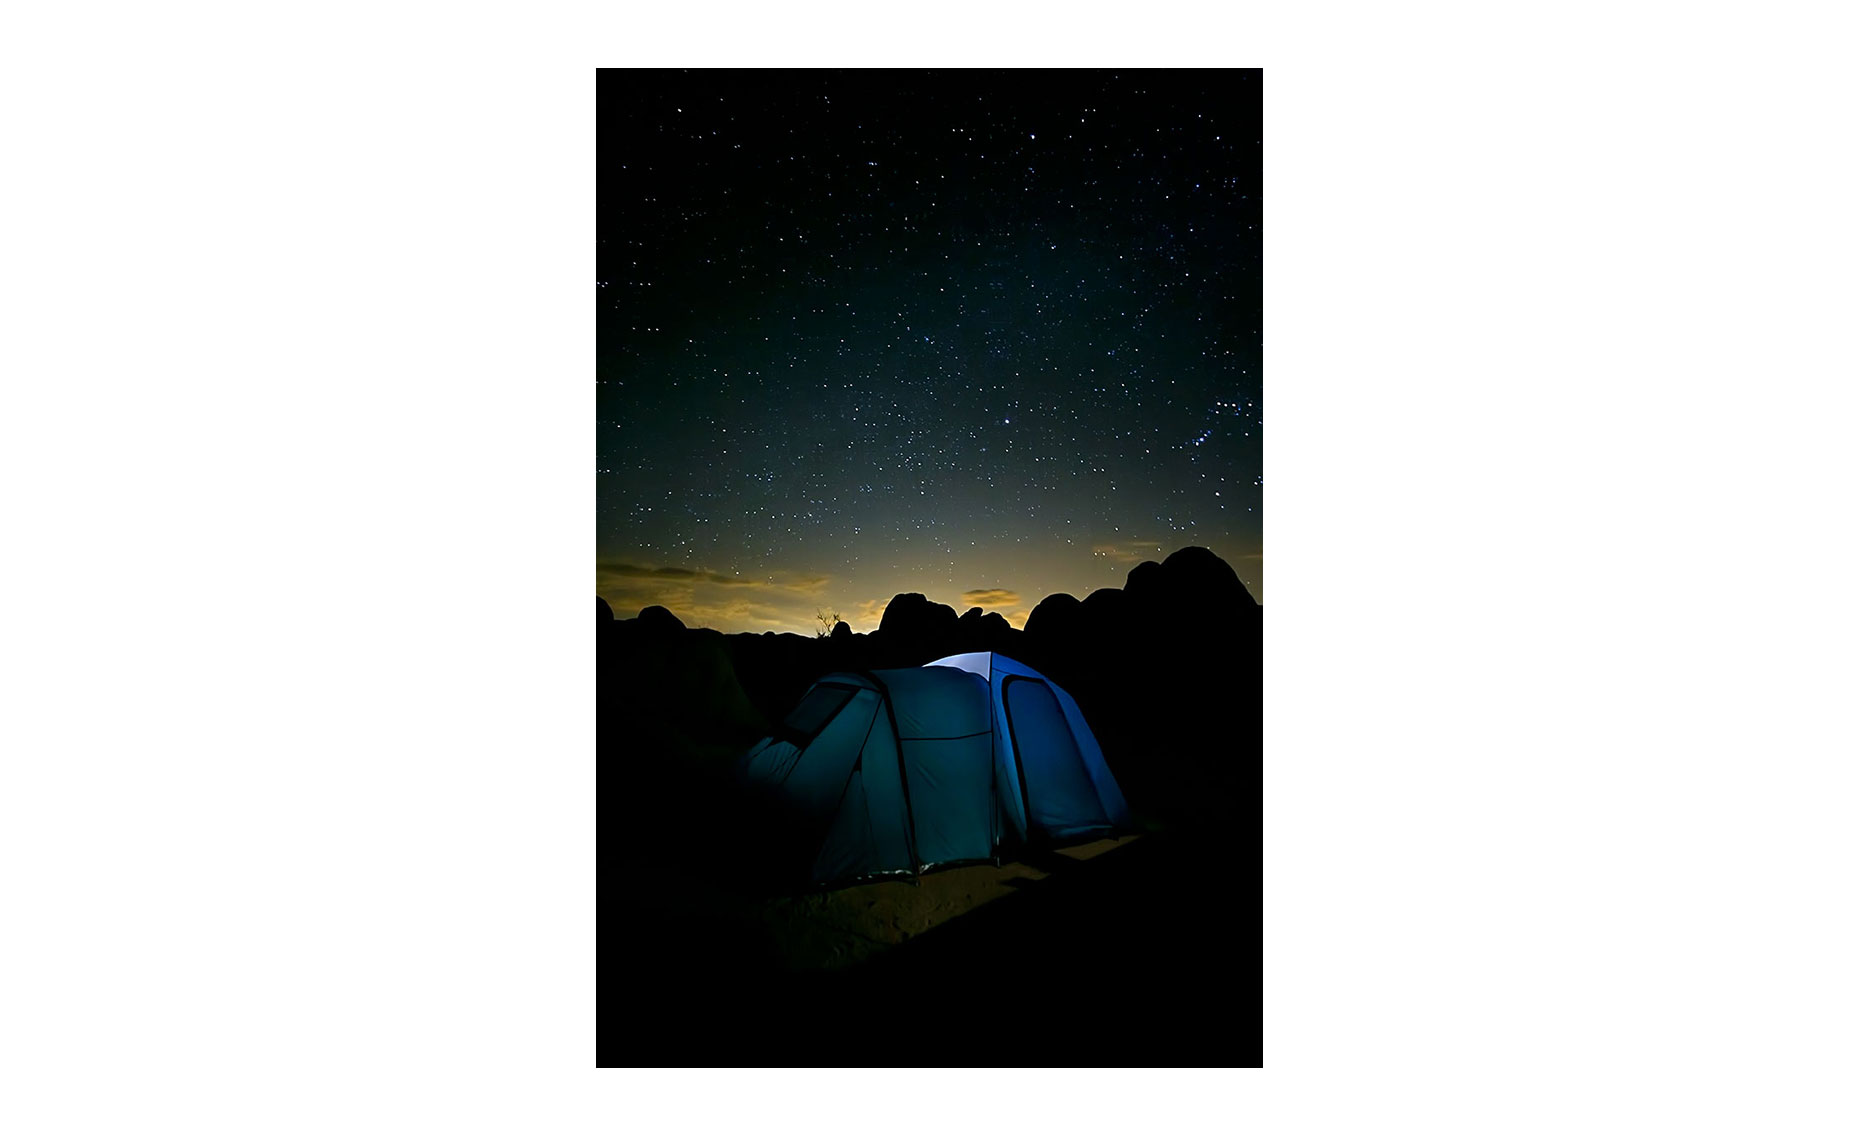 Sleeping-Under-The-Stars